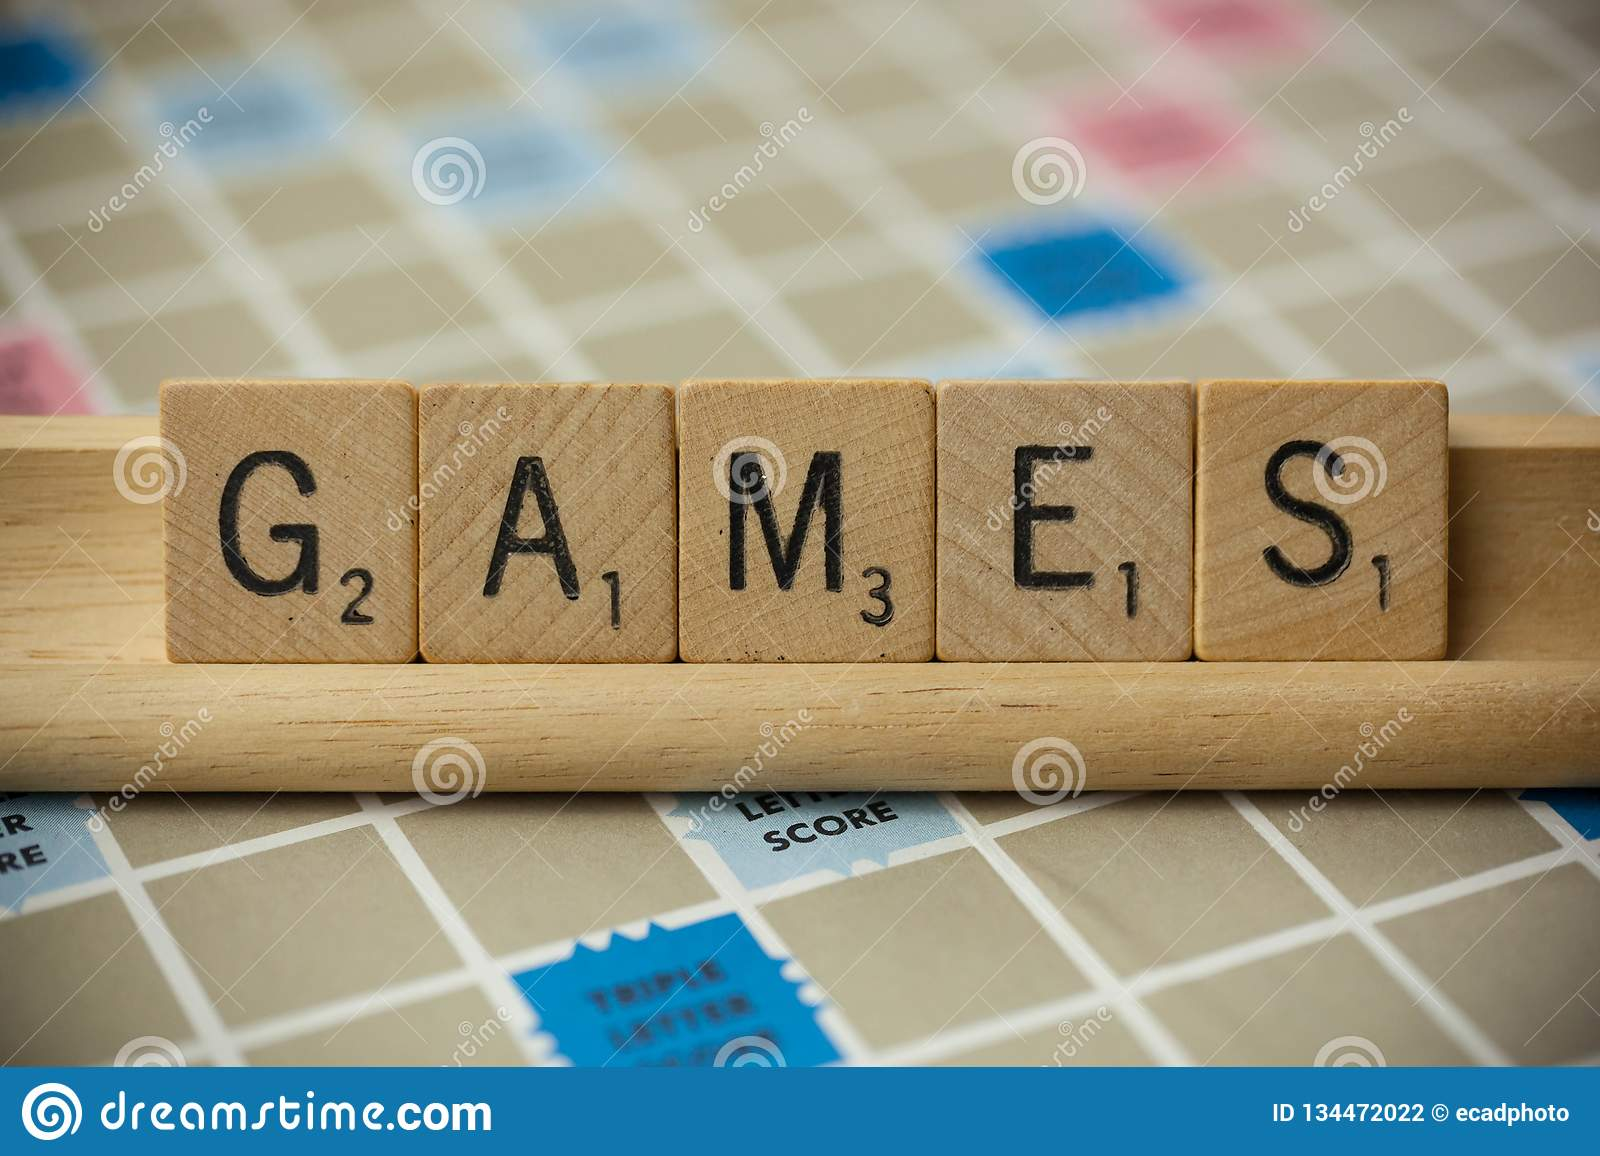 Games Scrabble Tiles editorial photography  Image of